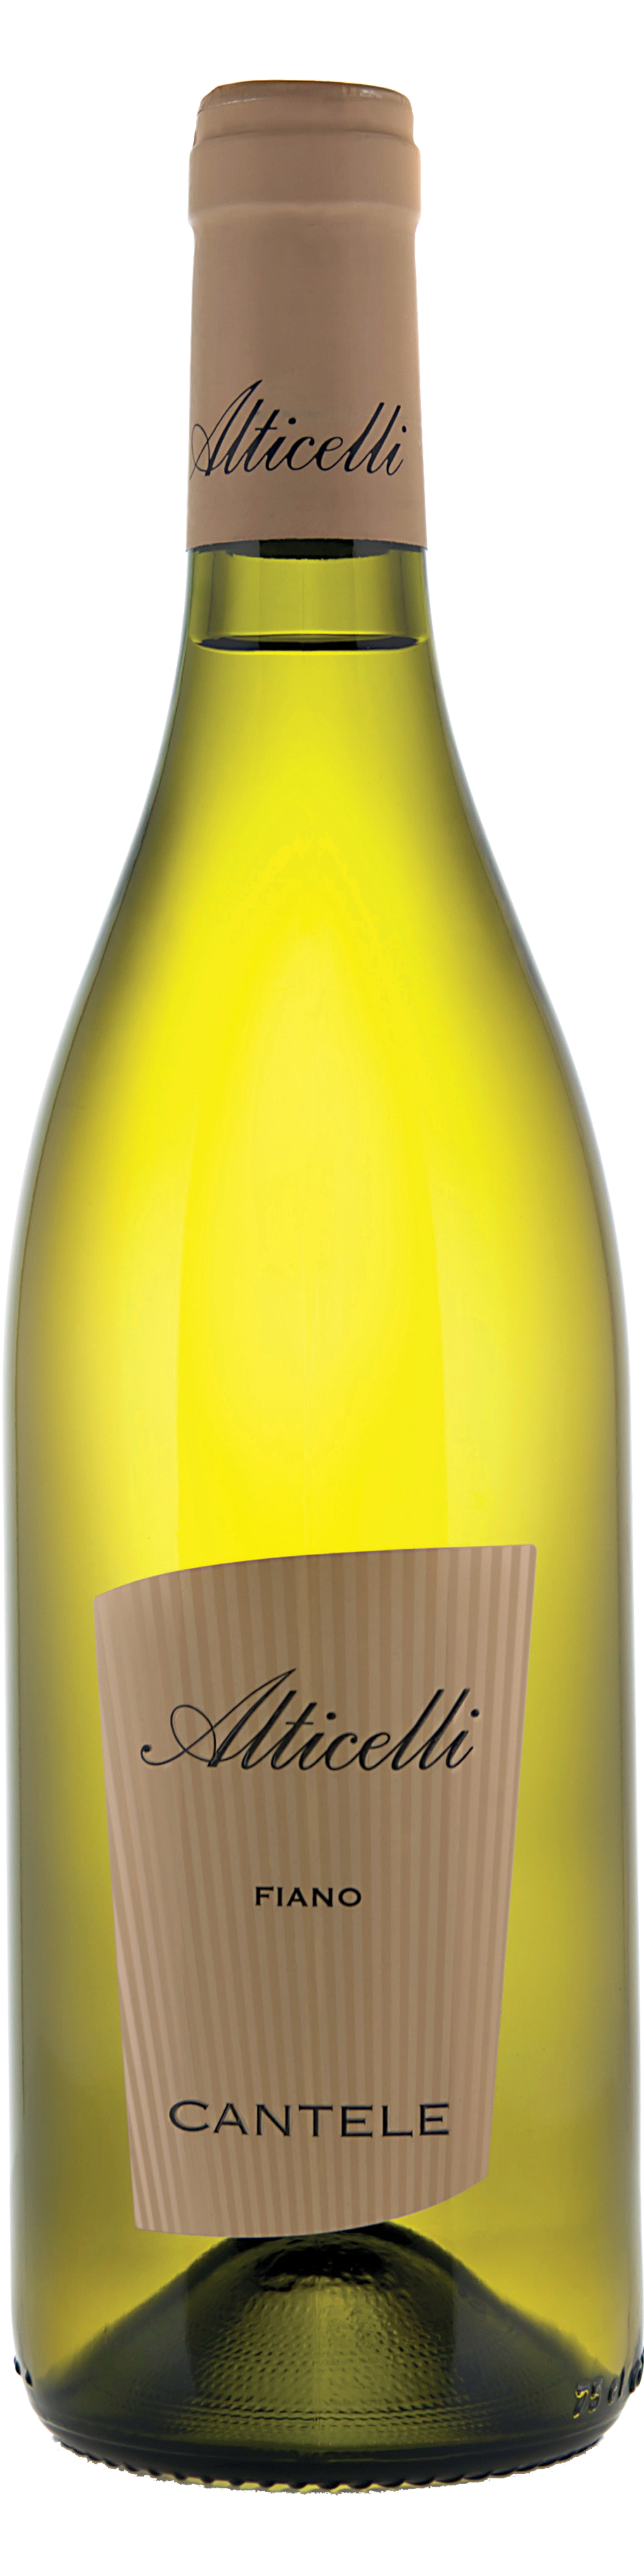 Image of product Alticelli Fiano IGT